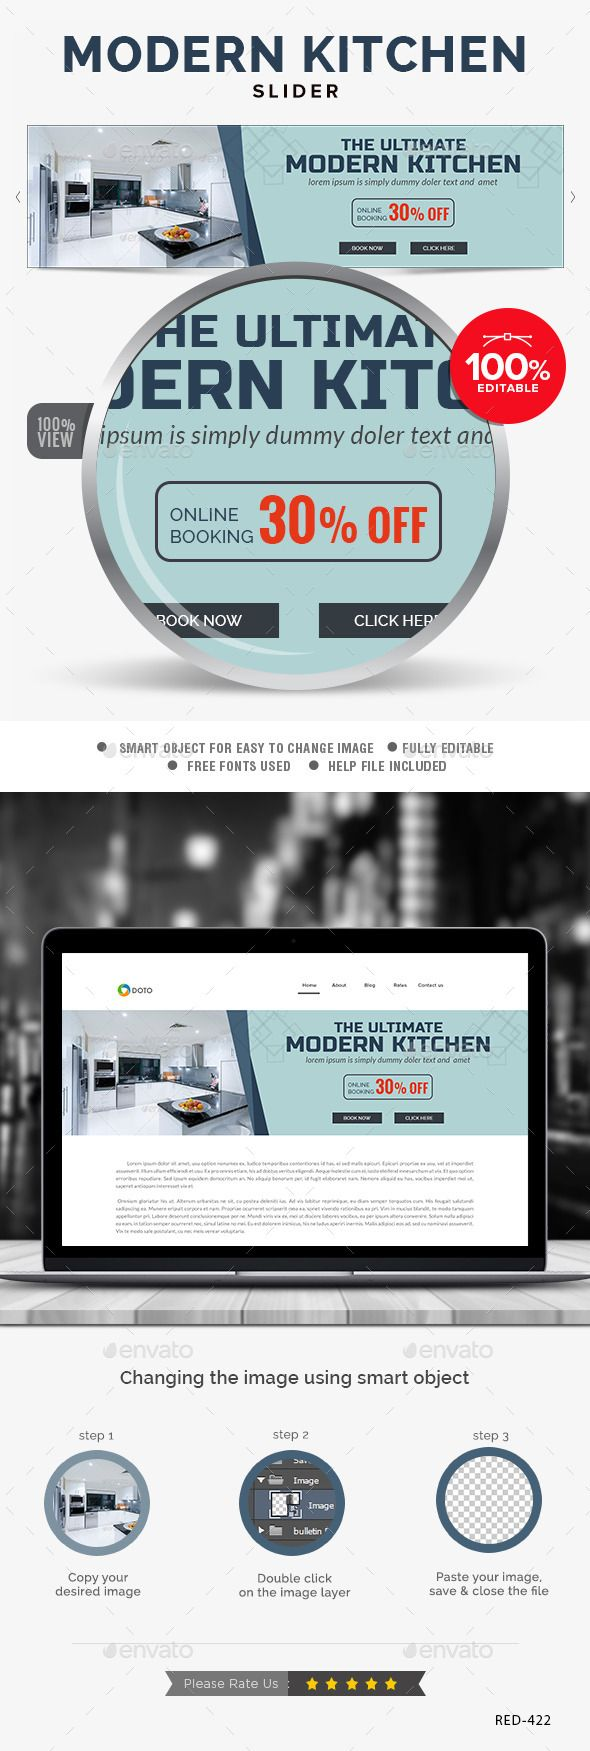 Furnuture Store Slider Sliders, Graphics design ideas